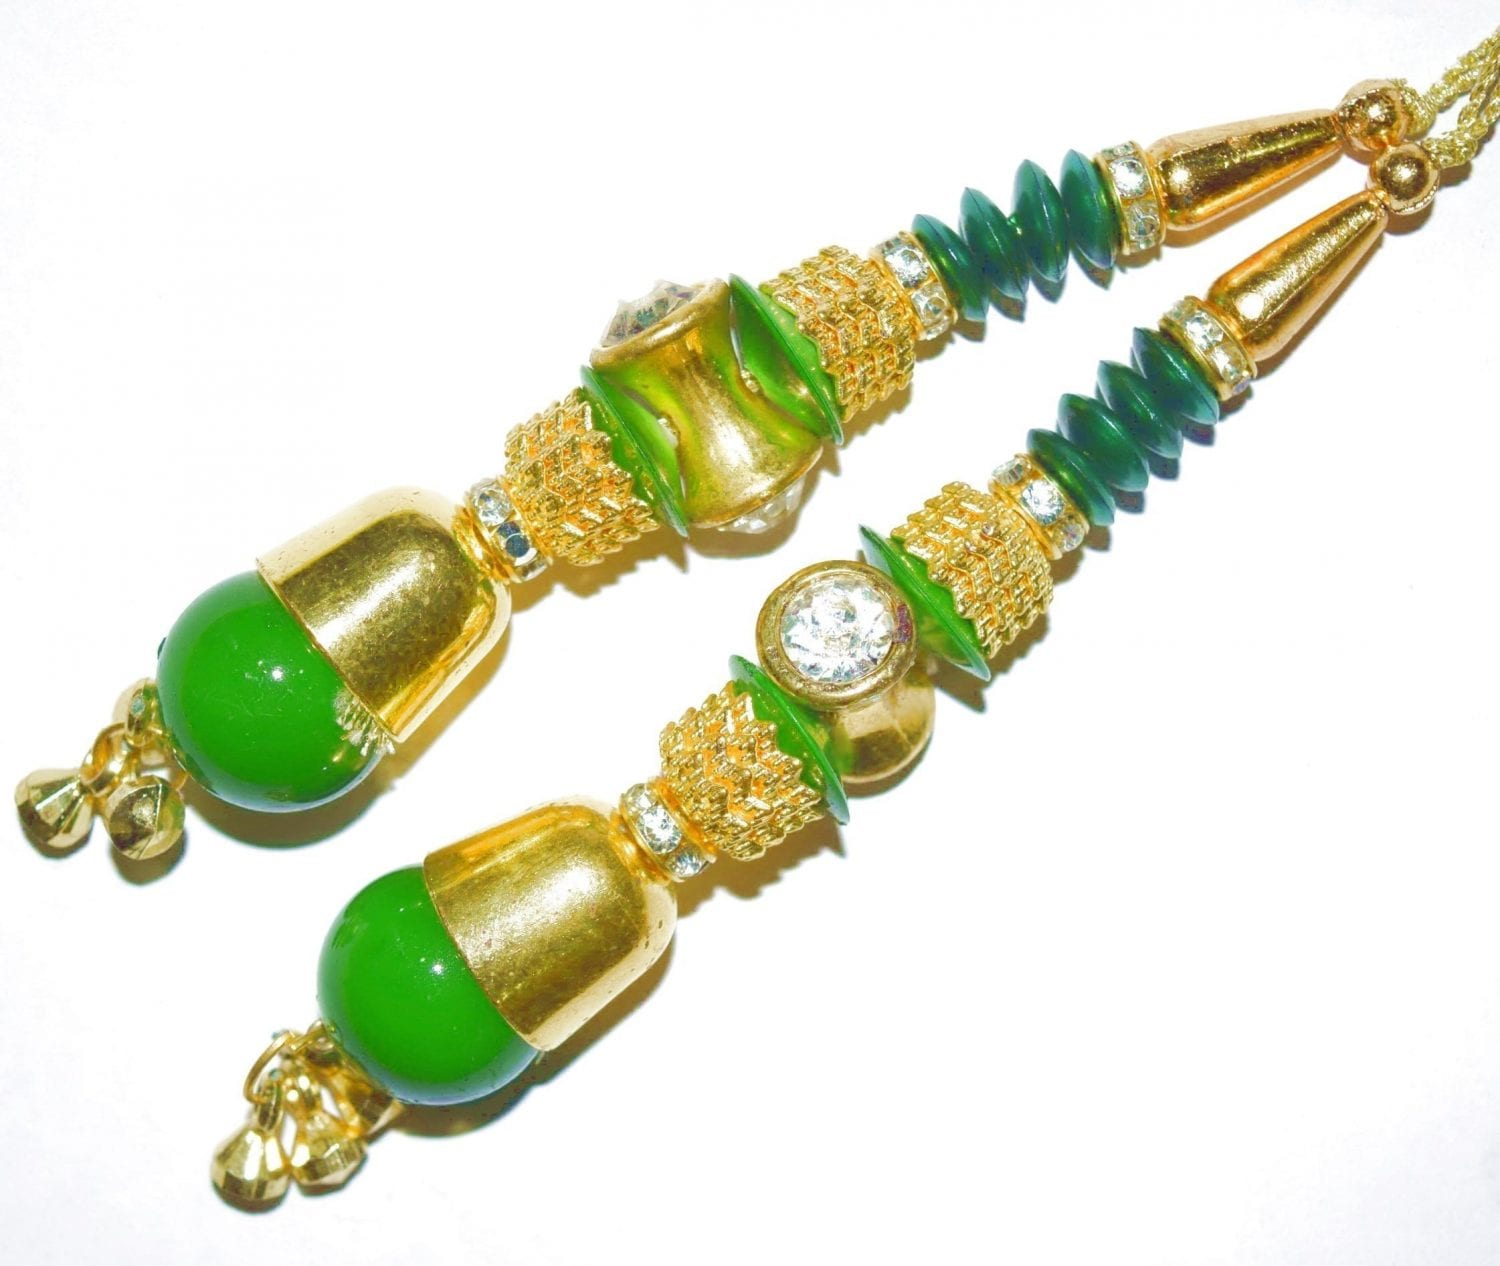 4.5 Inch long Latkans Dangles pair Multipurpose use for blouse, saree , dupatta, kurti, curtains LK056 1